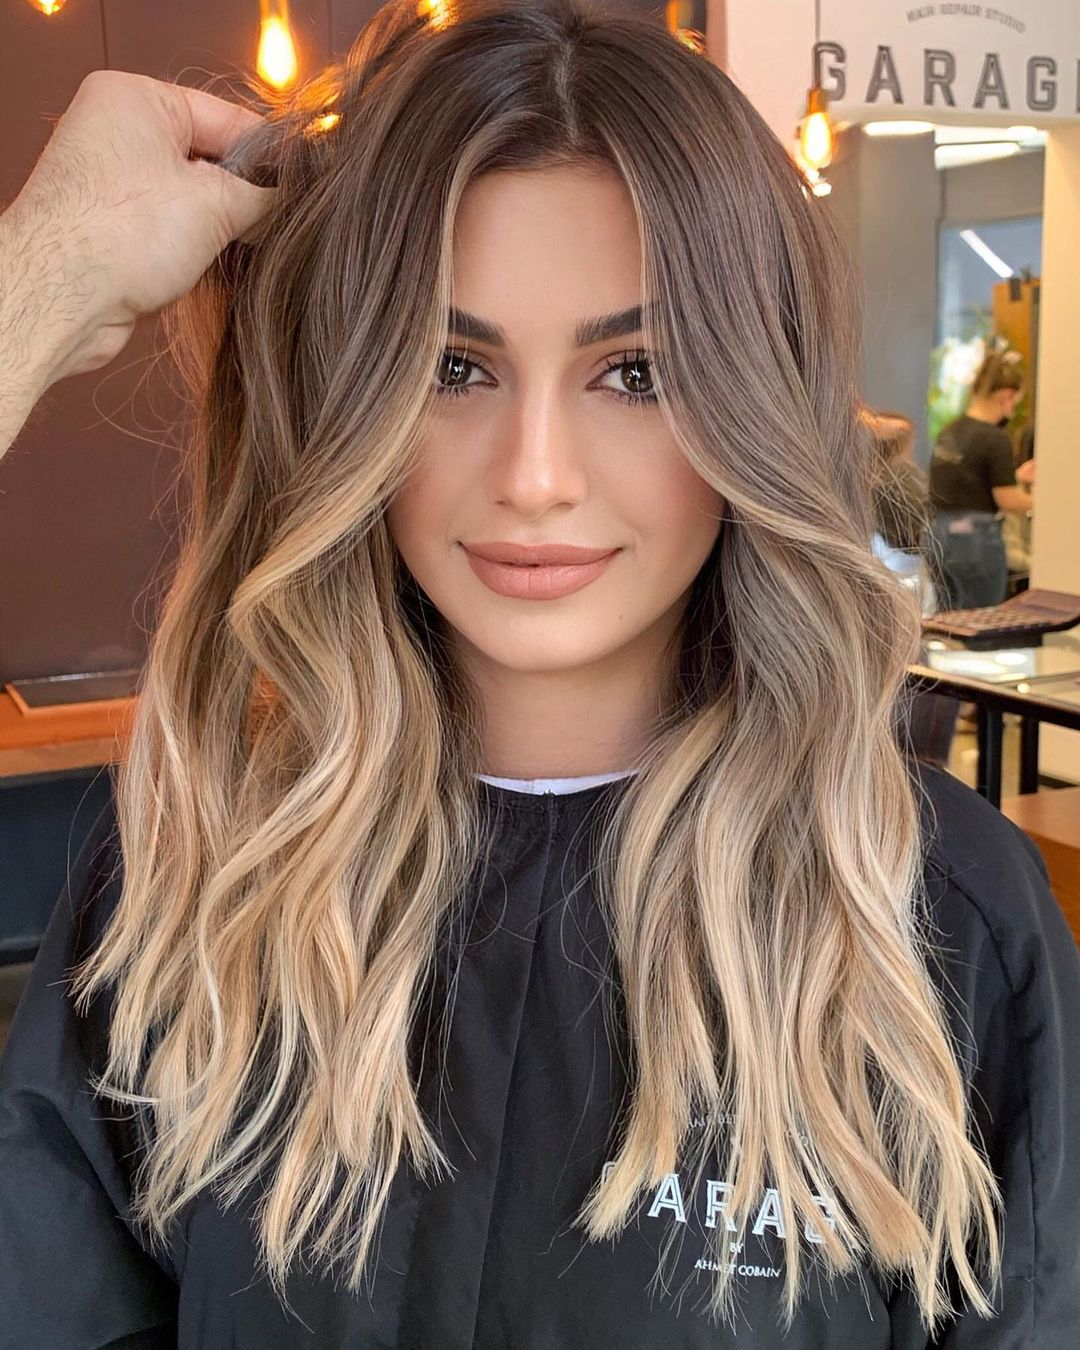 Ombre Balayage Haircut Ideas For Women - Medium and Long Hair Color Designs 2021-2022